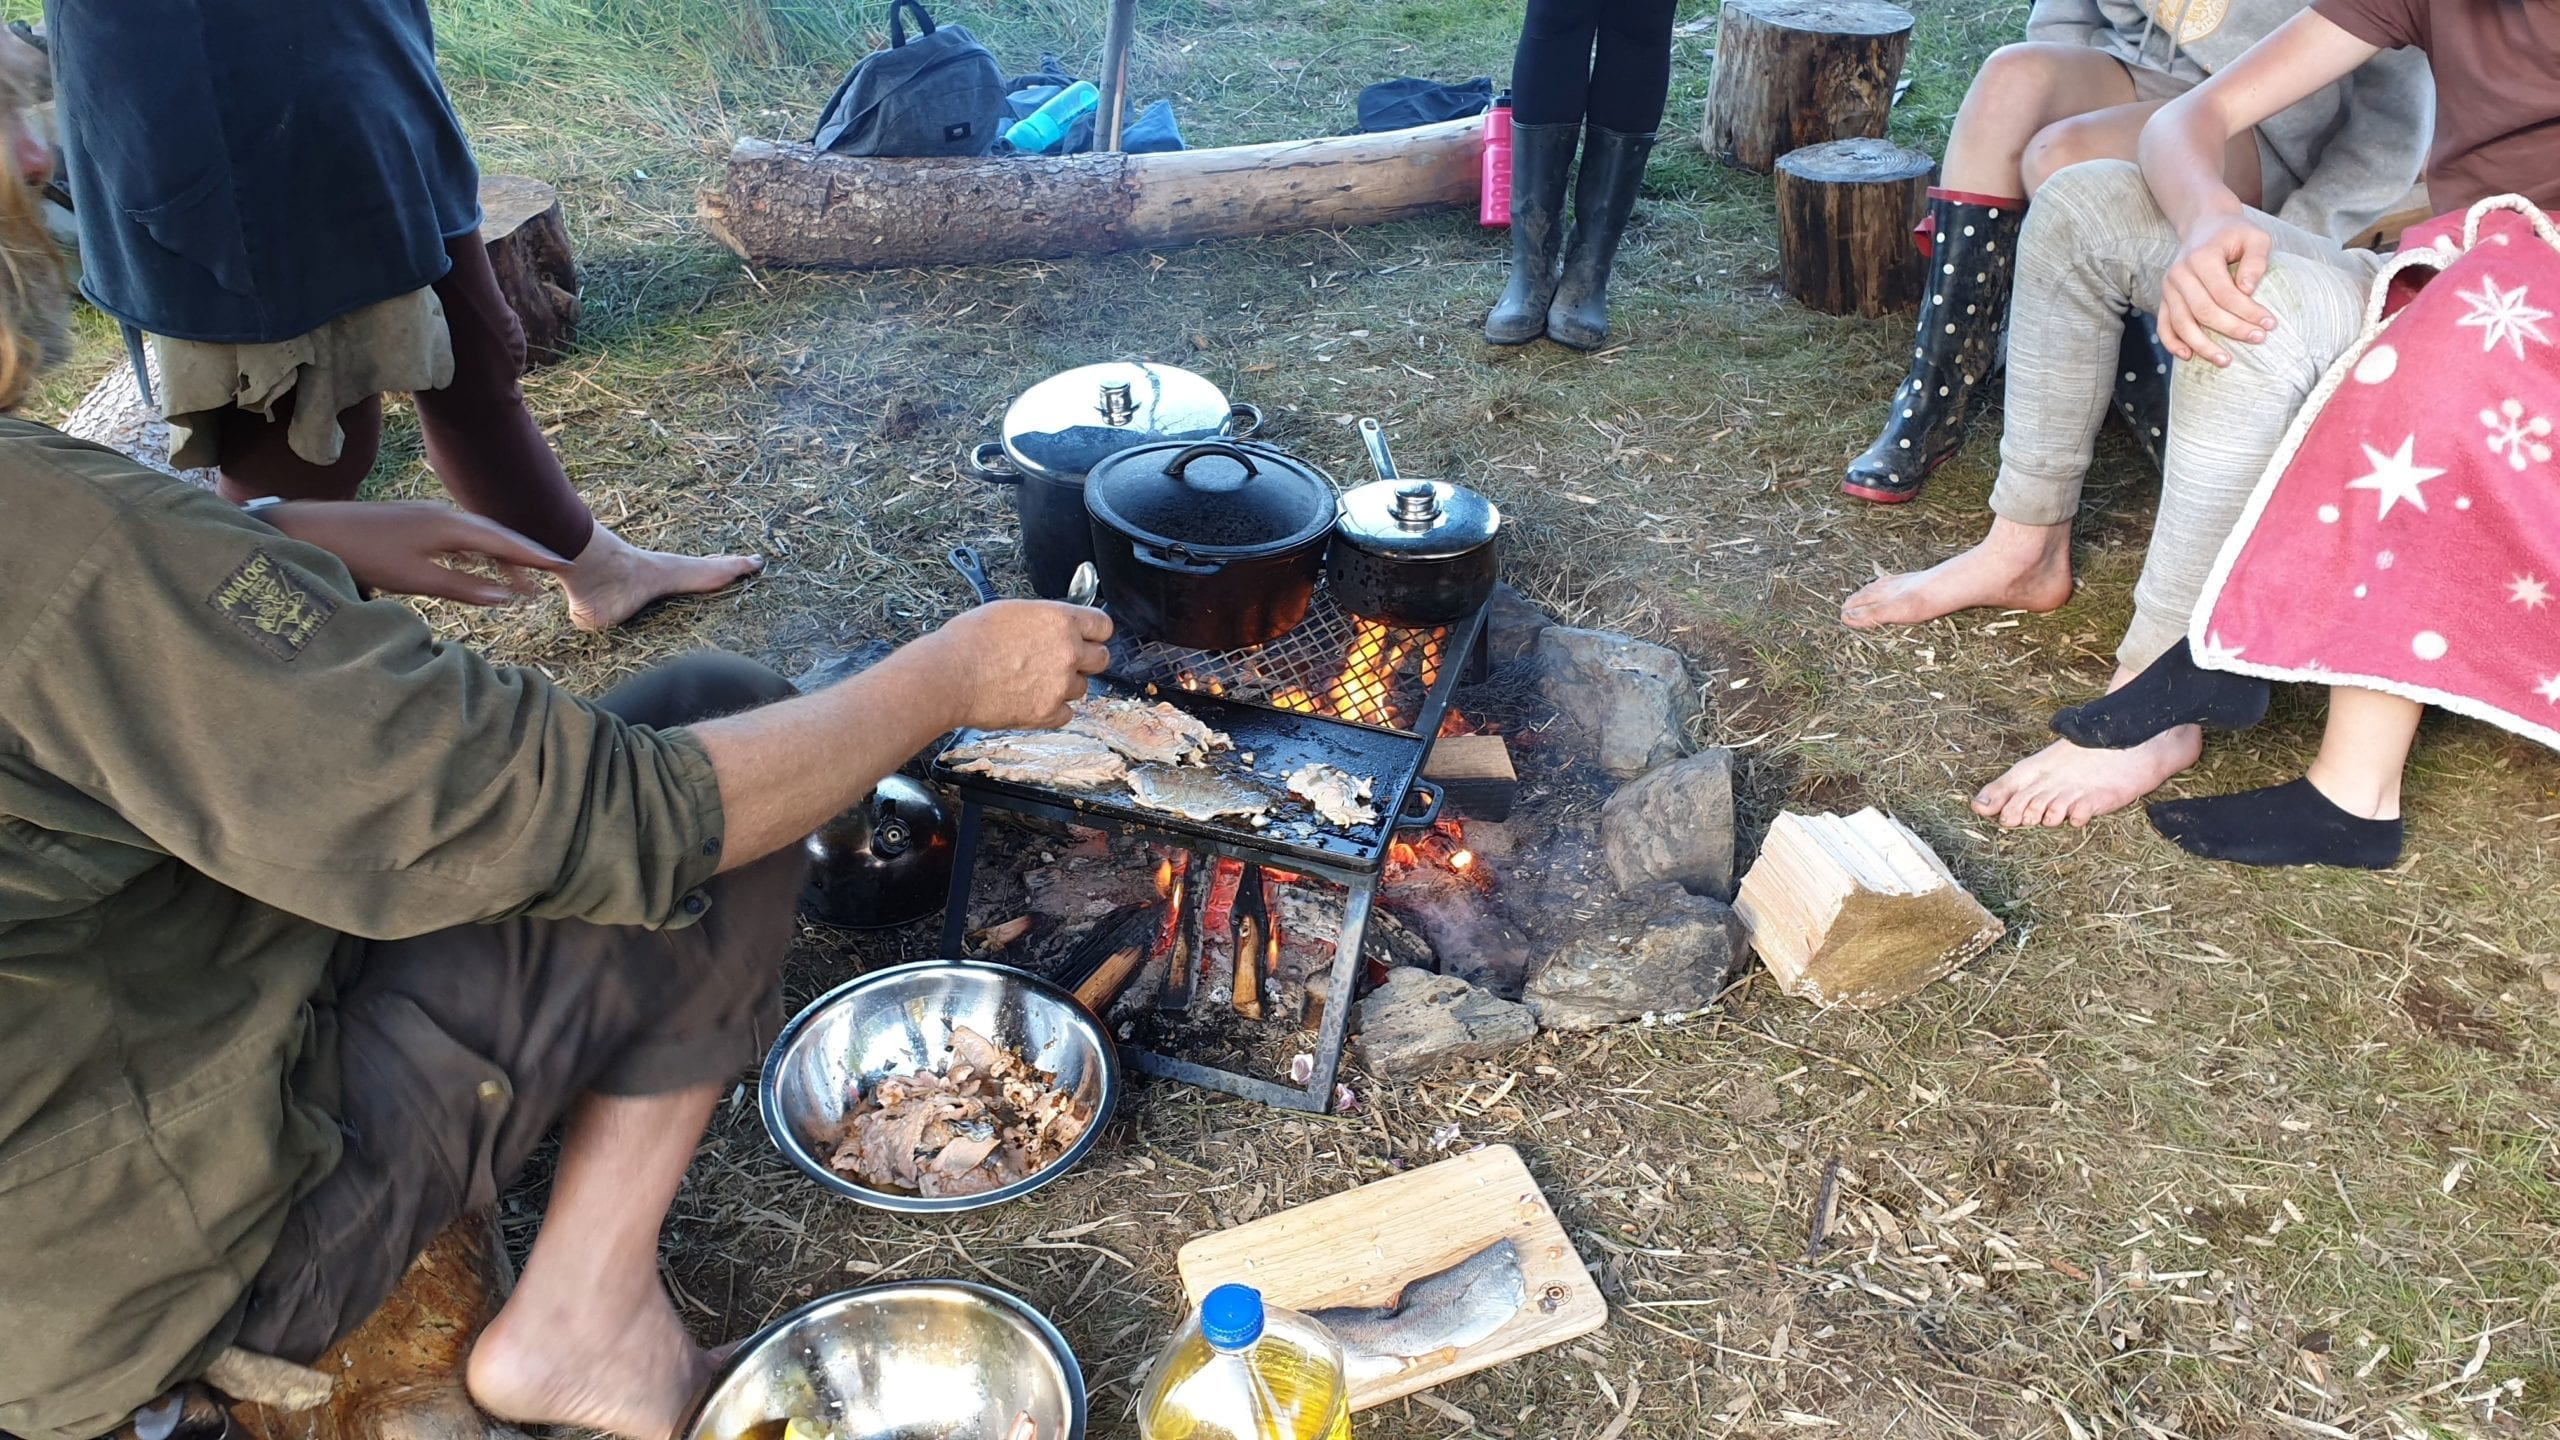 Cooking trout over campfire